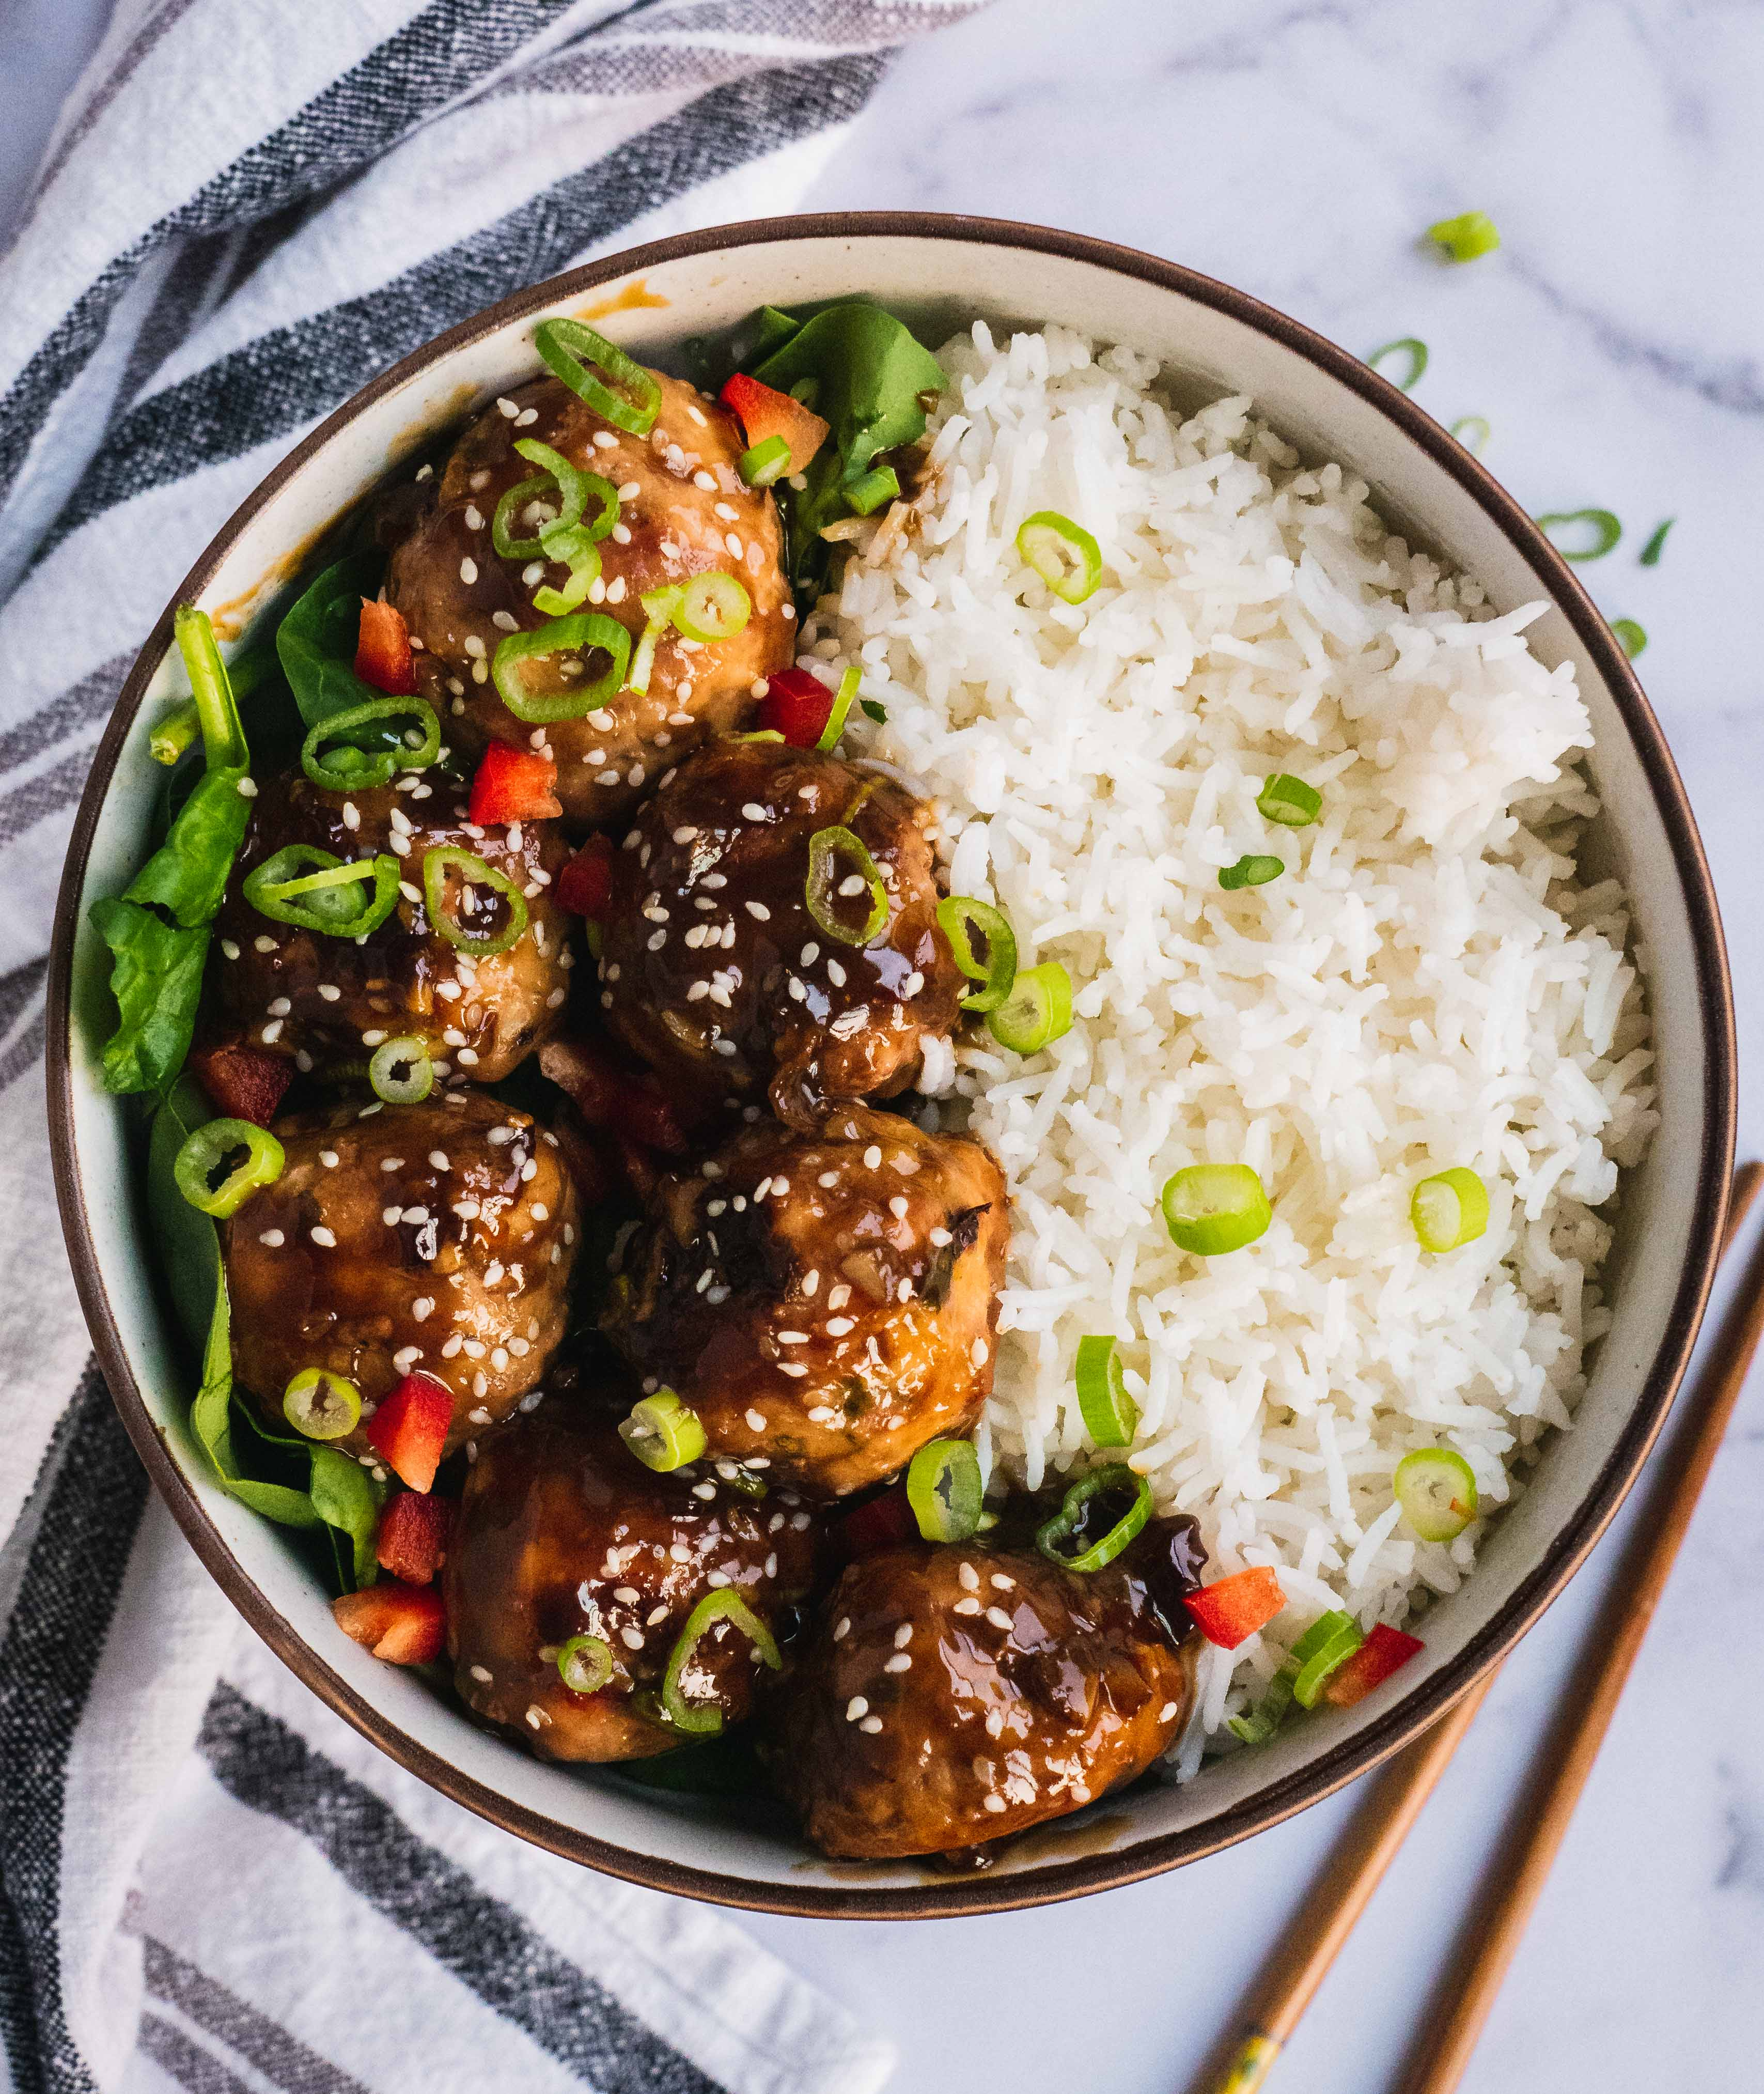 Whole30 Sticky Asian Meatballs | Juicy and flavorful meatballs topped with homemade sticky Asian sauce. These delicious Whole30 Sticky Asian Meatballs are not your average Chinese takeout food. It is not only so easy to make, but also paleo, gluten free, dairy free and keto friendly. #whole30 #whole30meatballs #whole30recipe #paleo #paleorecipe #whole30dinner #meatballs #chinesefood